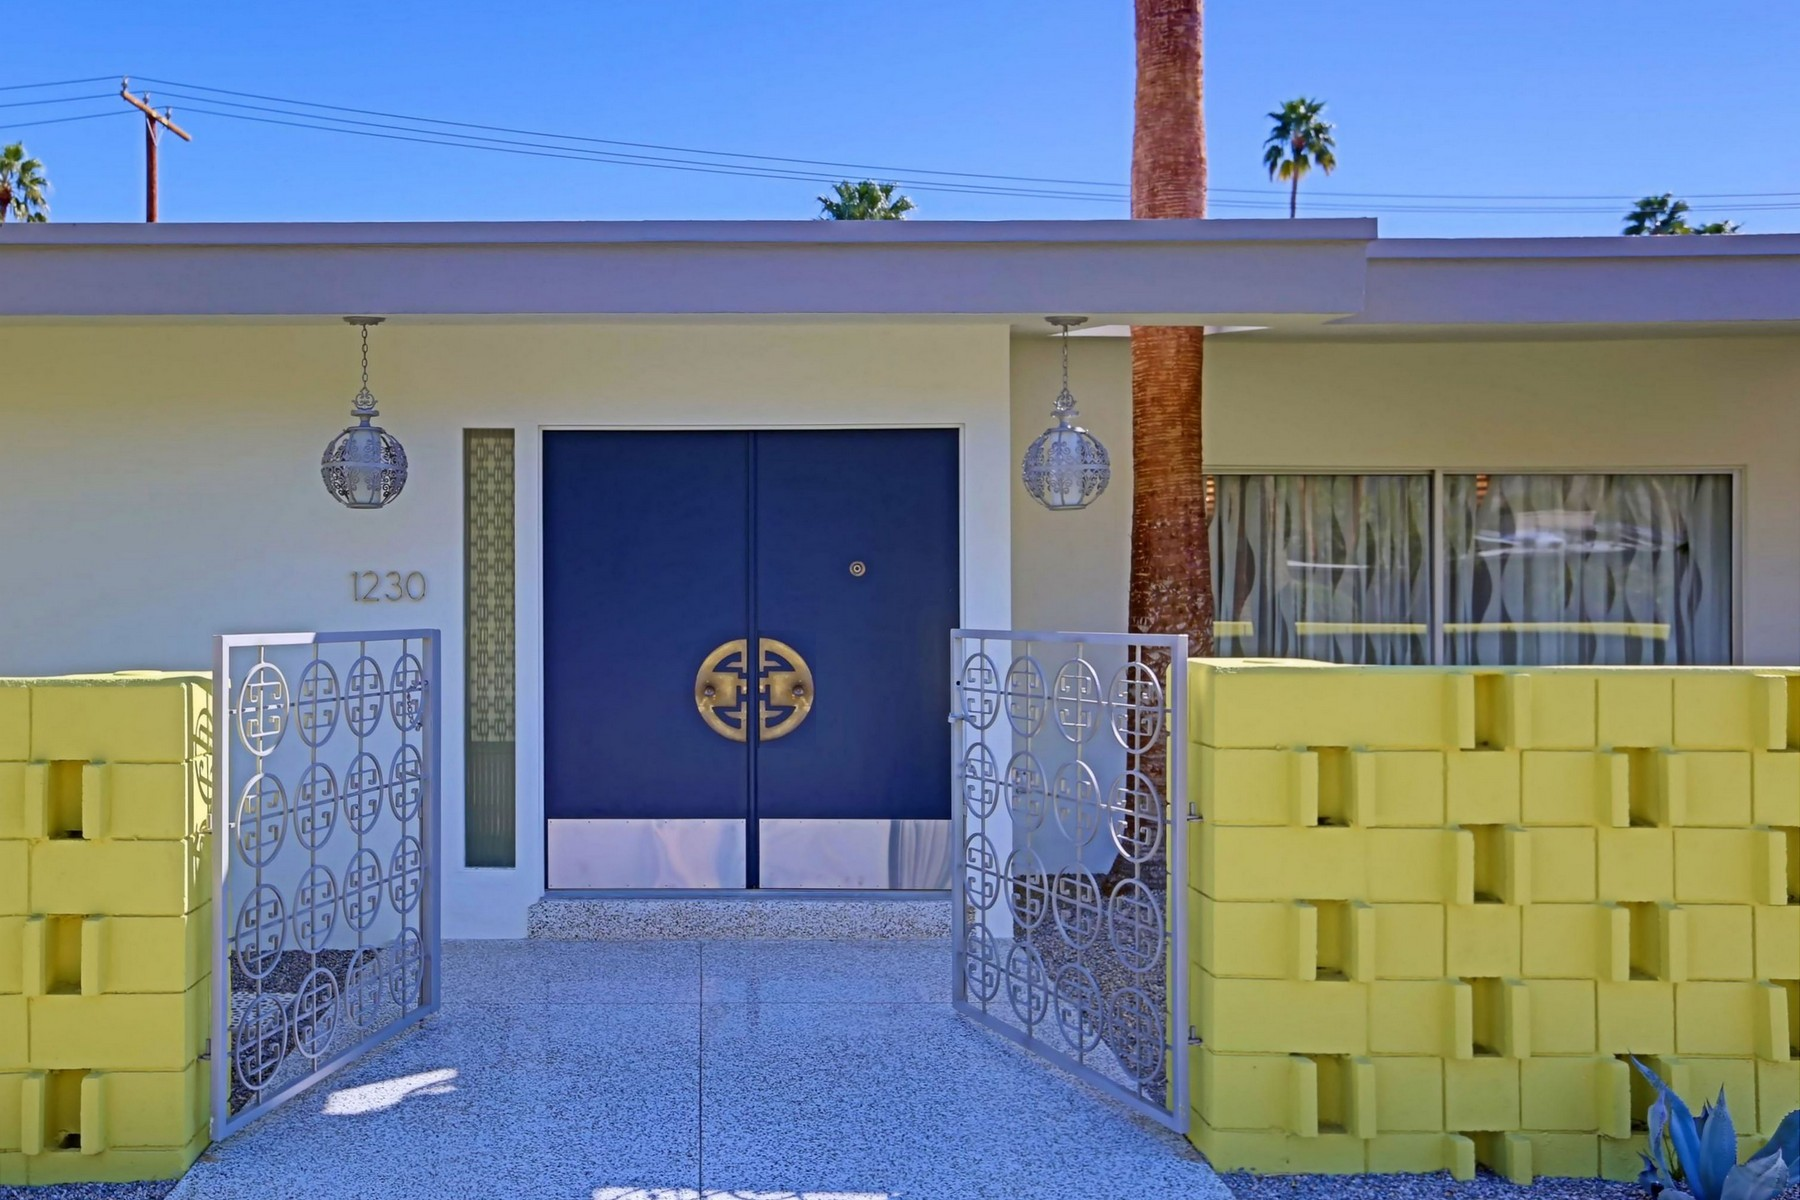 Single Family Home for Sale at 1230 West Calle De Maria Palm Springs, California, 92264 United States